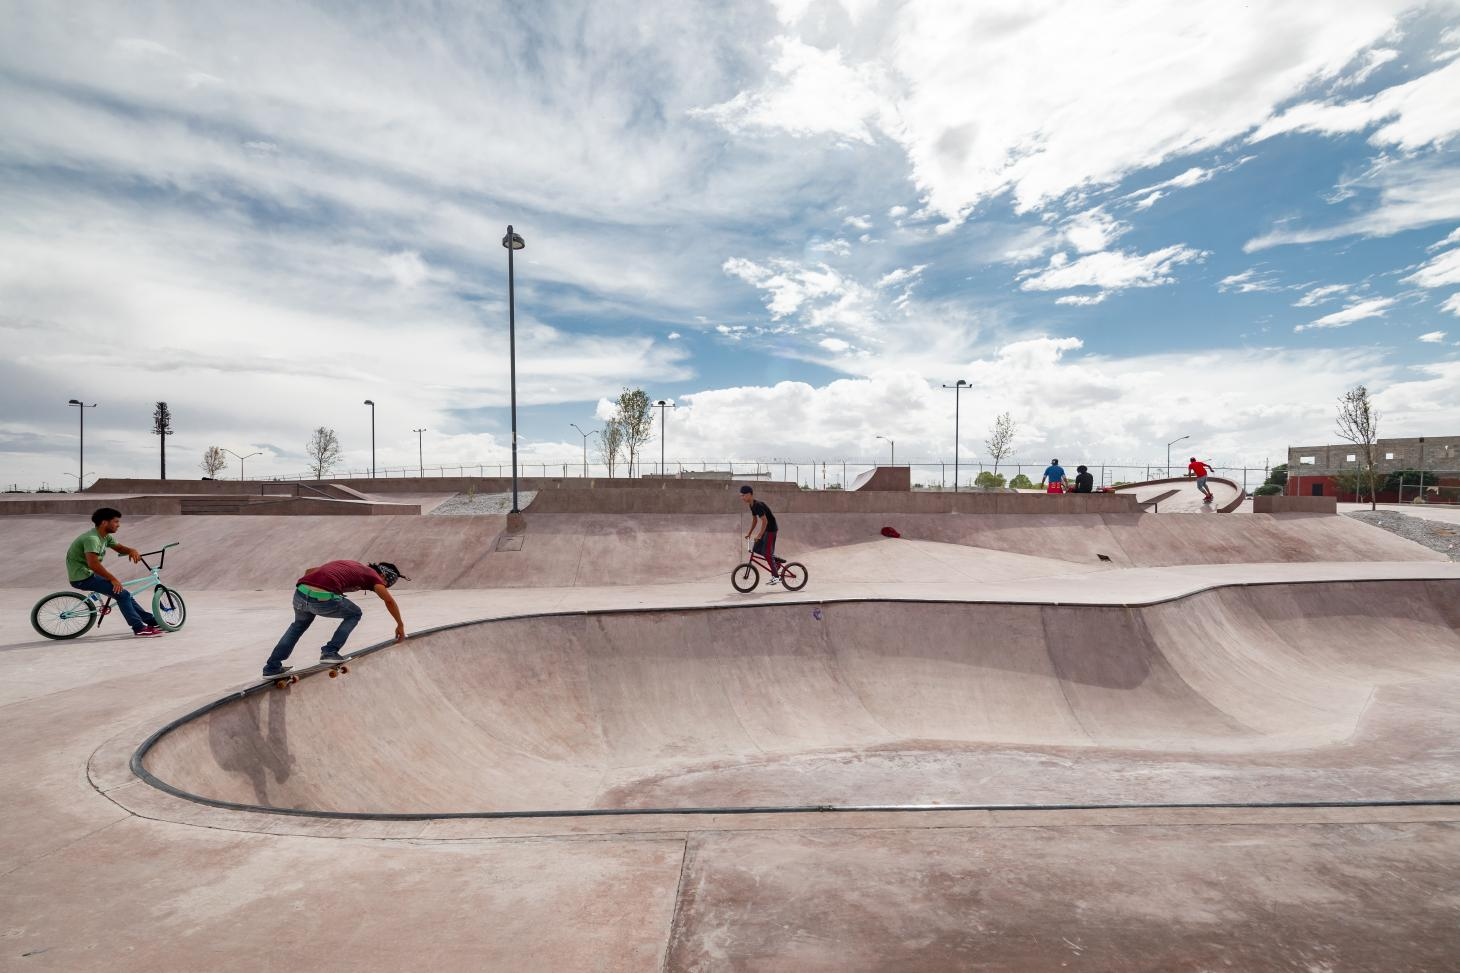 pink concrete and skaters at skatepark